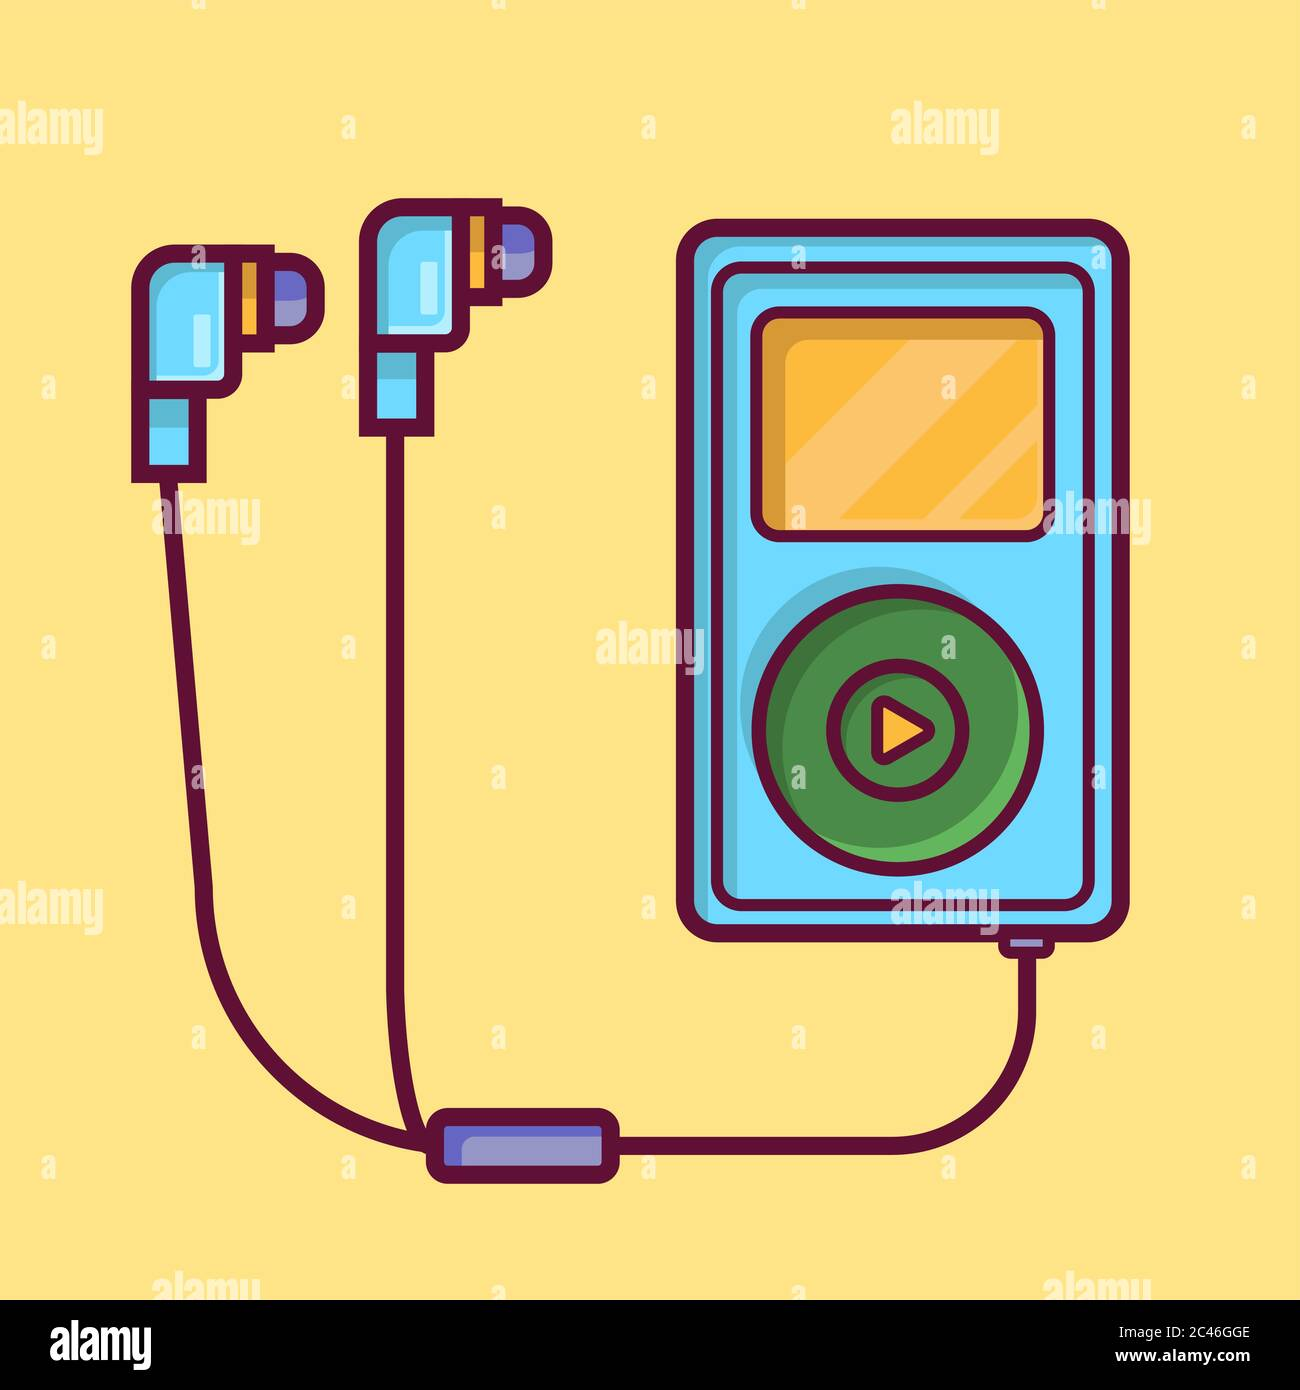 Ipod Audio Music Player With Headset Vector Illustration Flat Cartoon Style Stock Vector Image Art Alamy